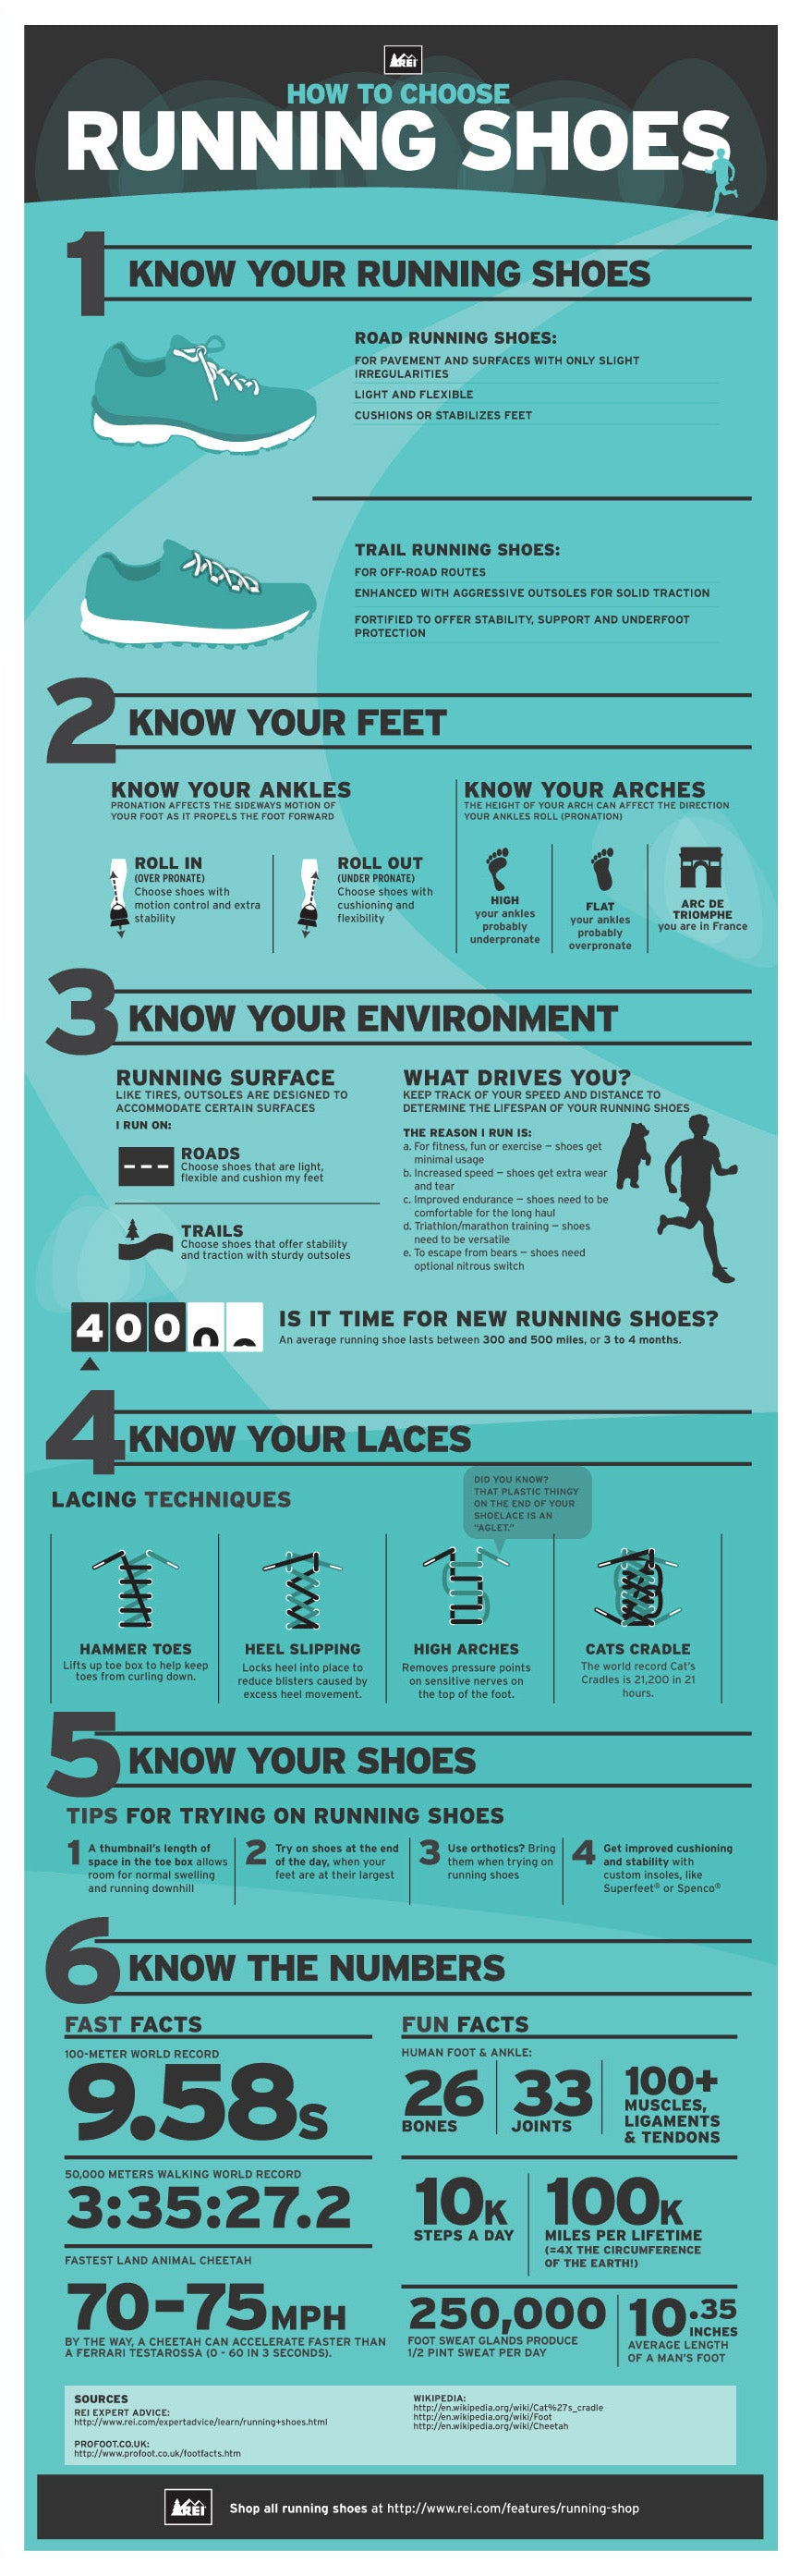 How to choose running shoes?